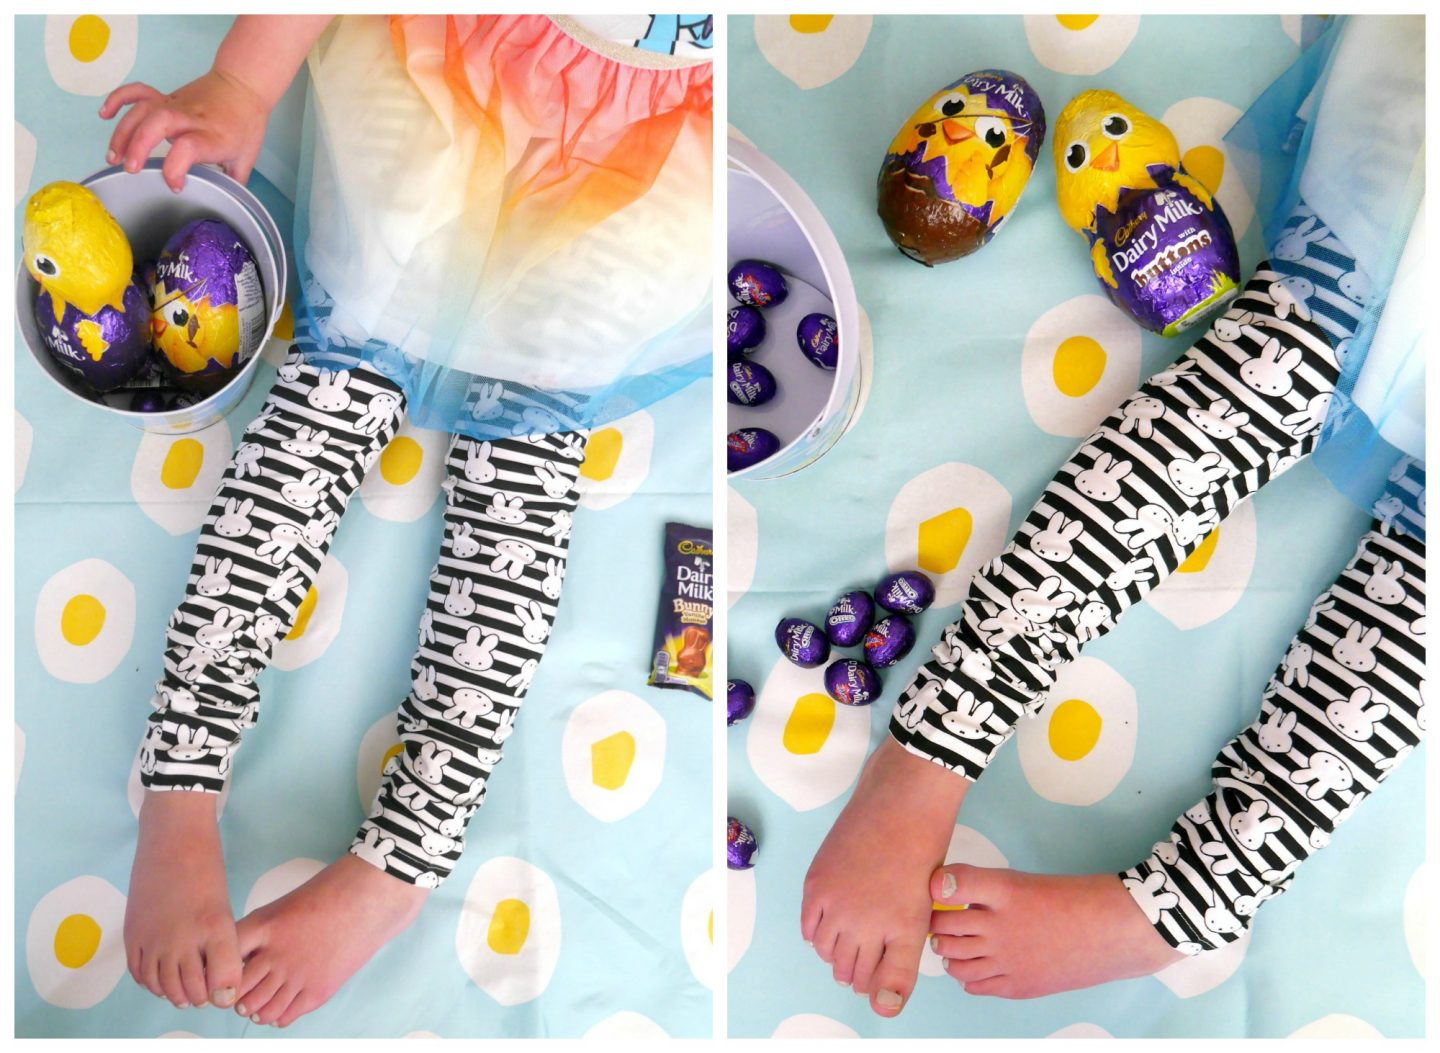 5 steps to a perfect Easter egg hunt - a how to guide to planning your own egg hunt